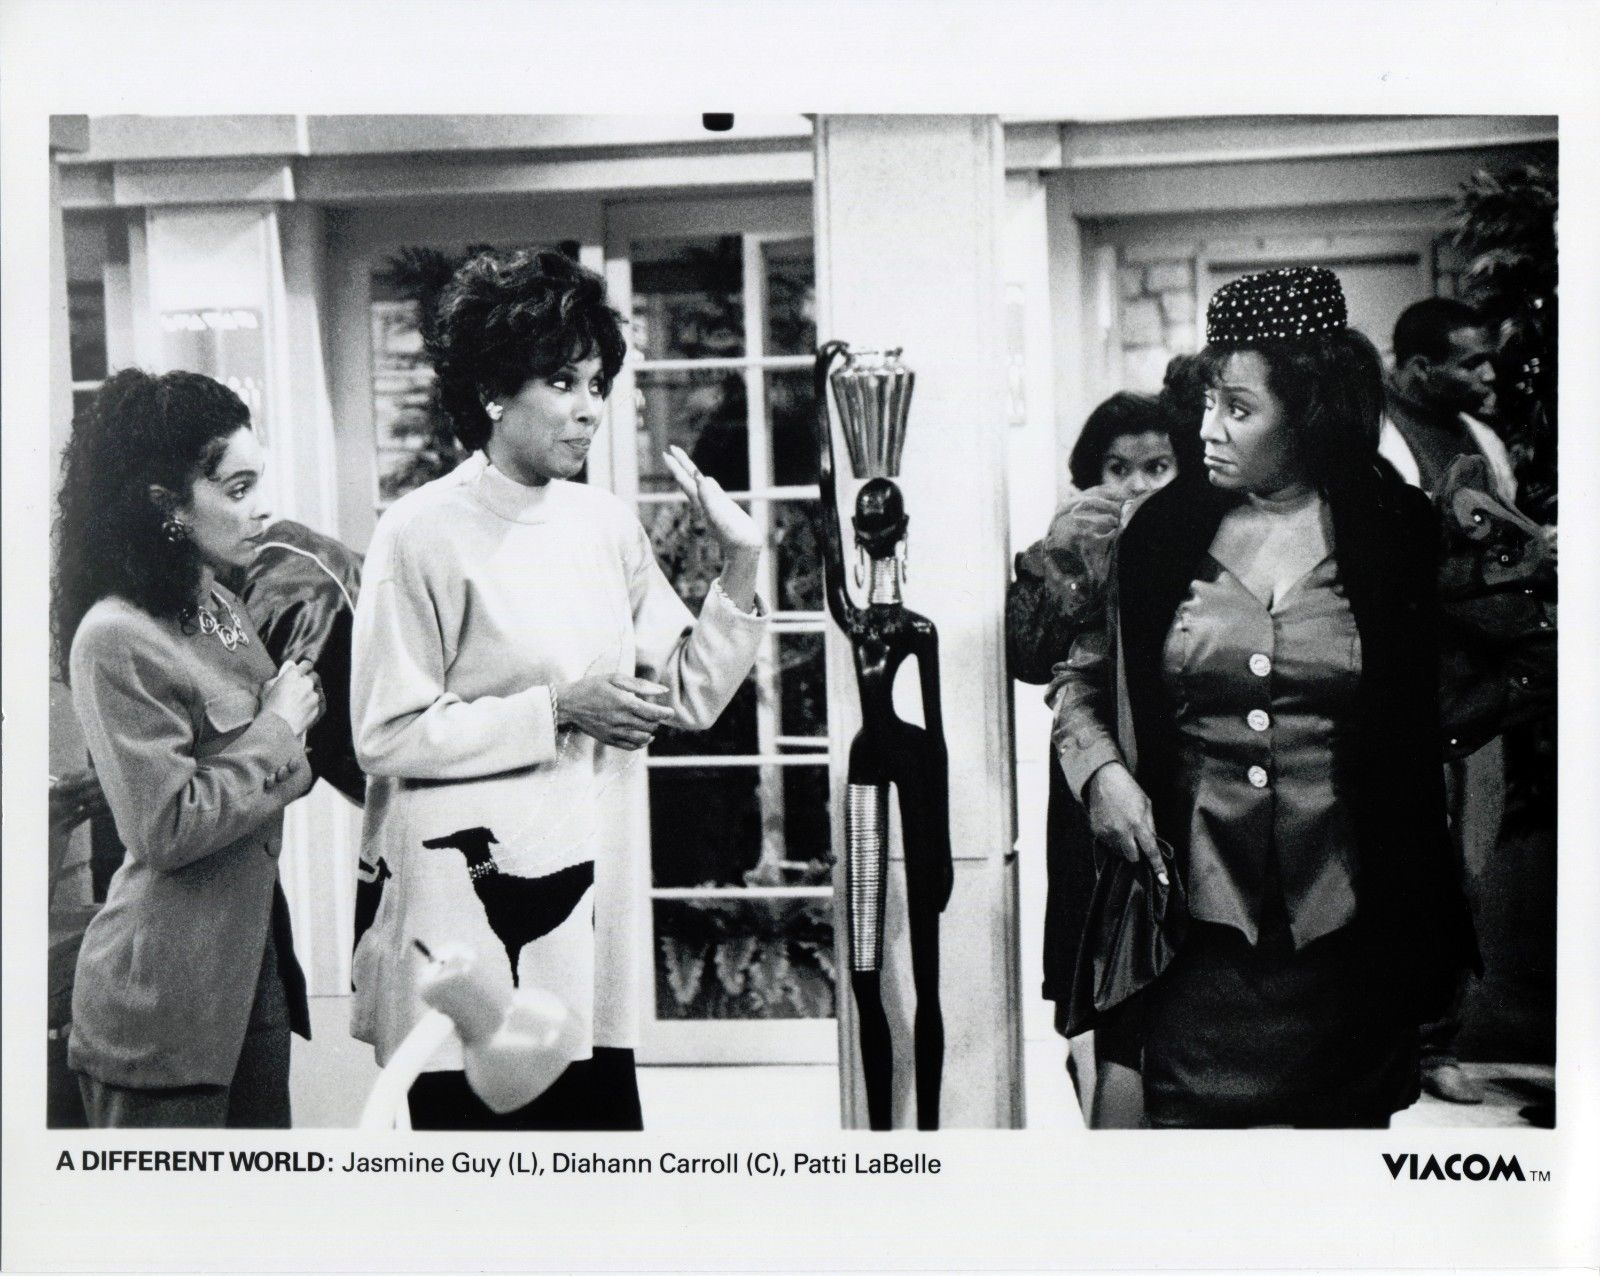 Vintage_photo_of_Jasmine_Guy_Diahann_Carroll_in_A_DIFFERENT_WORLD_C059